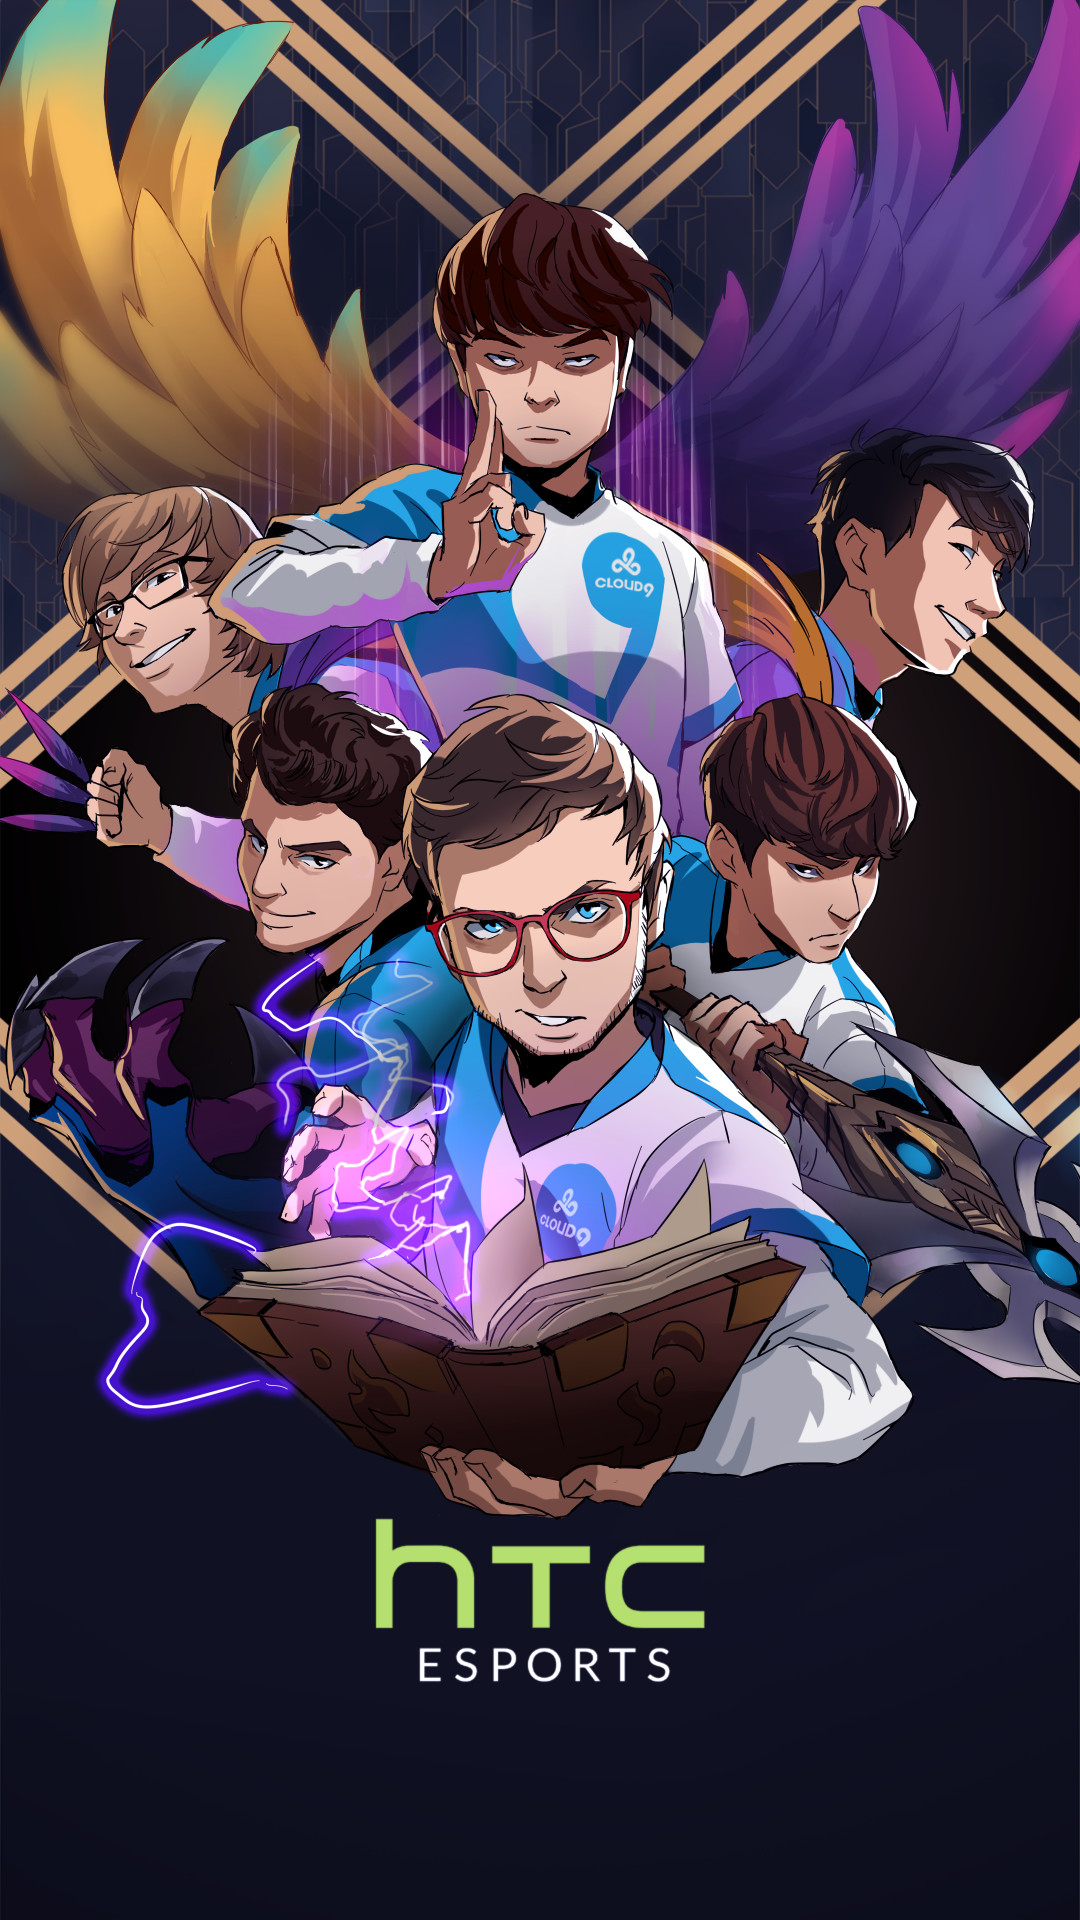 Artstation Htc Worlds 2017 Tsm And C9 Phone Wallpapers